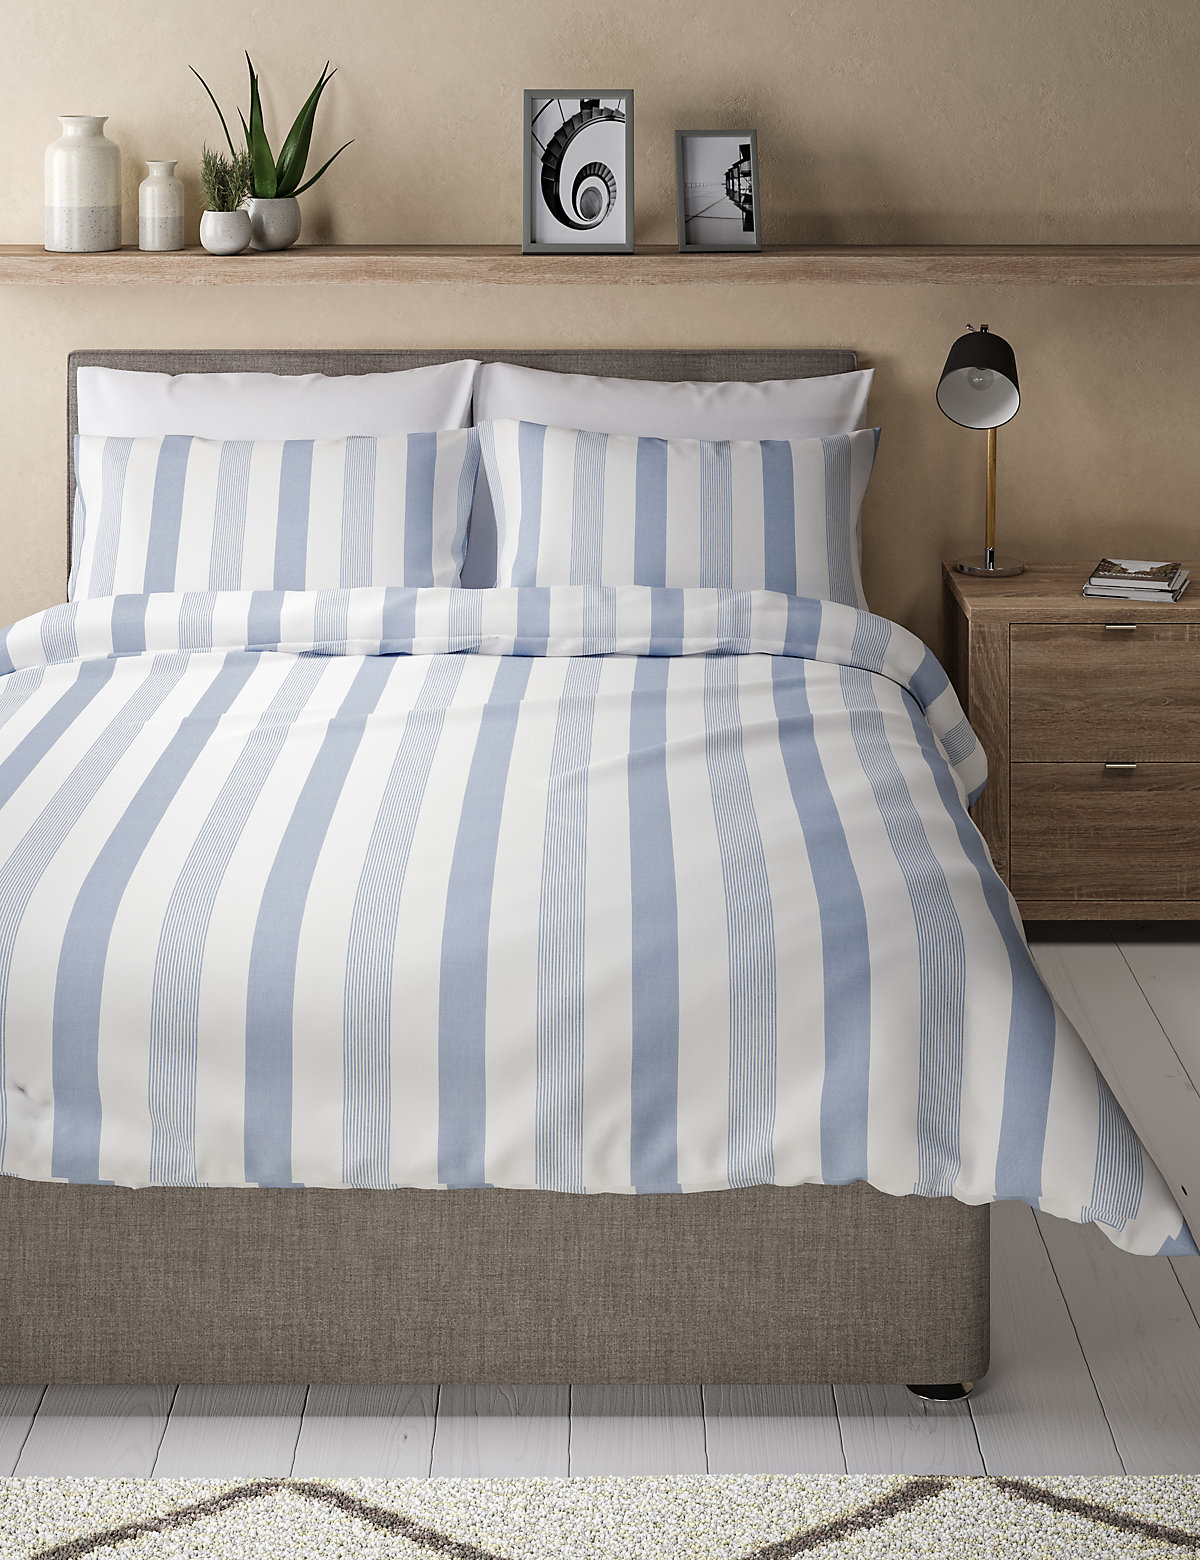 marks and spencer hadley striped bedding set